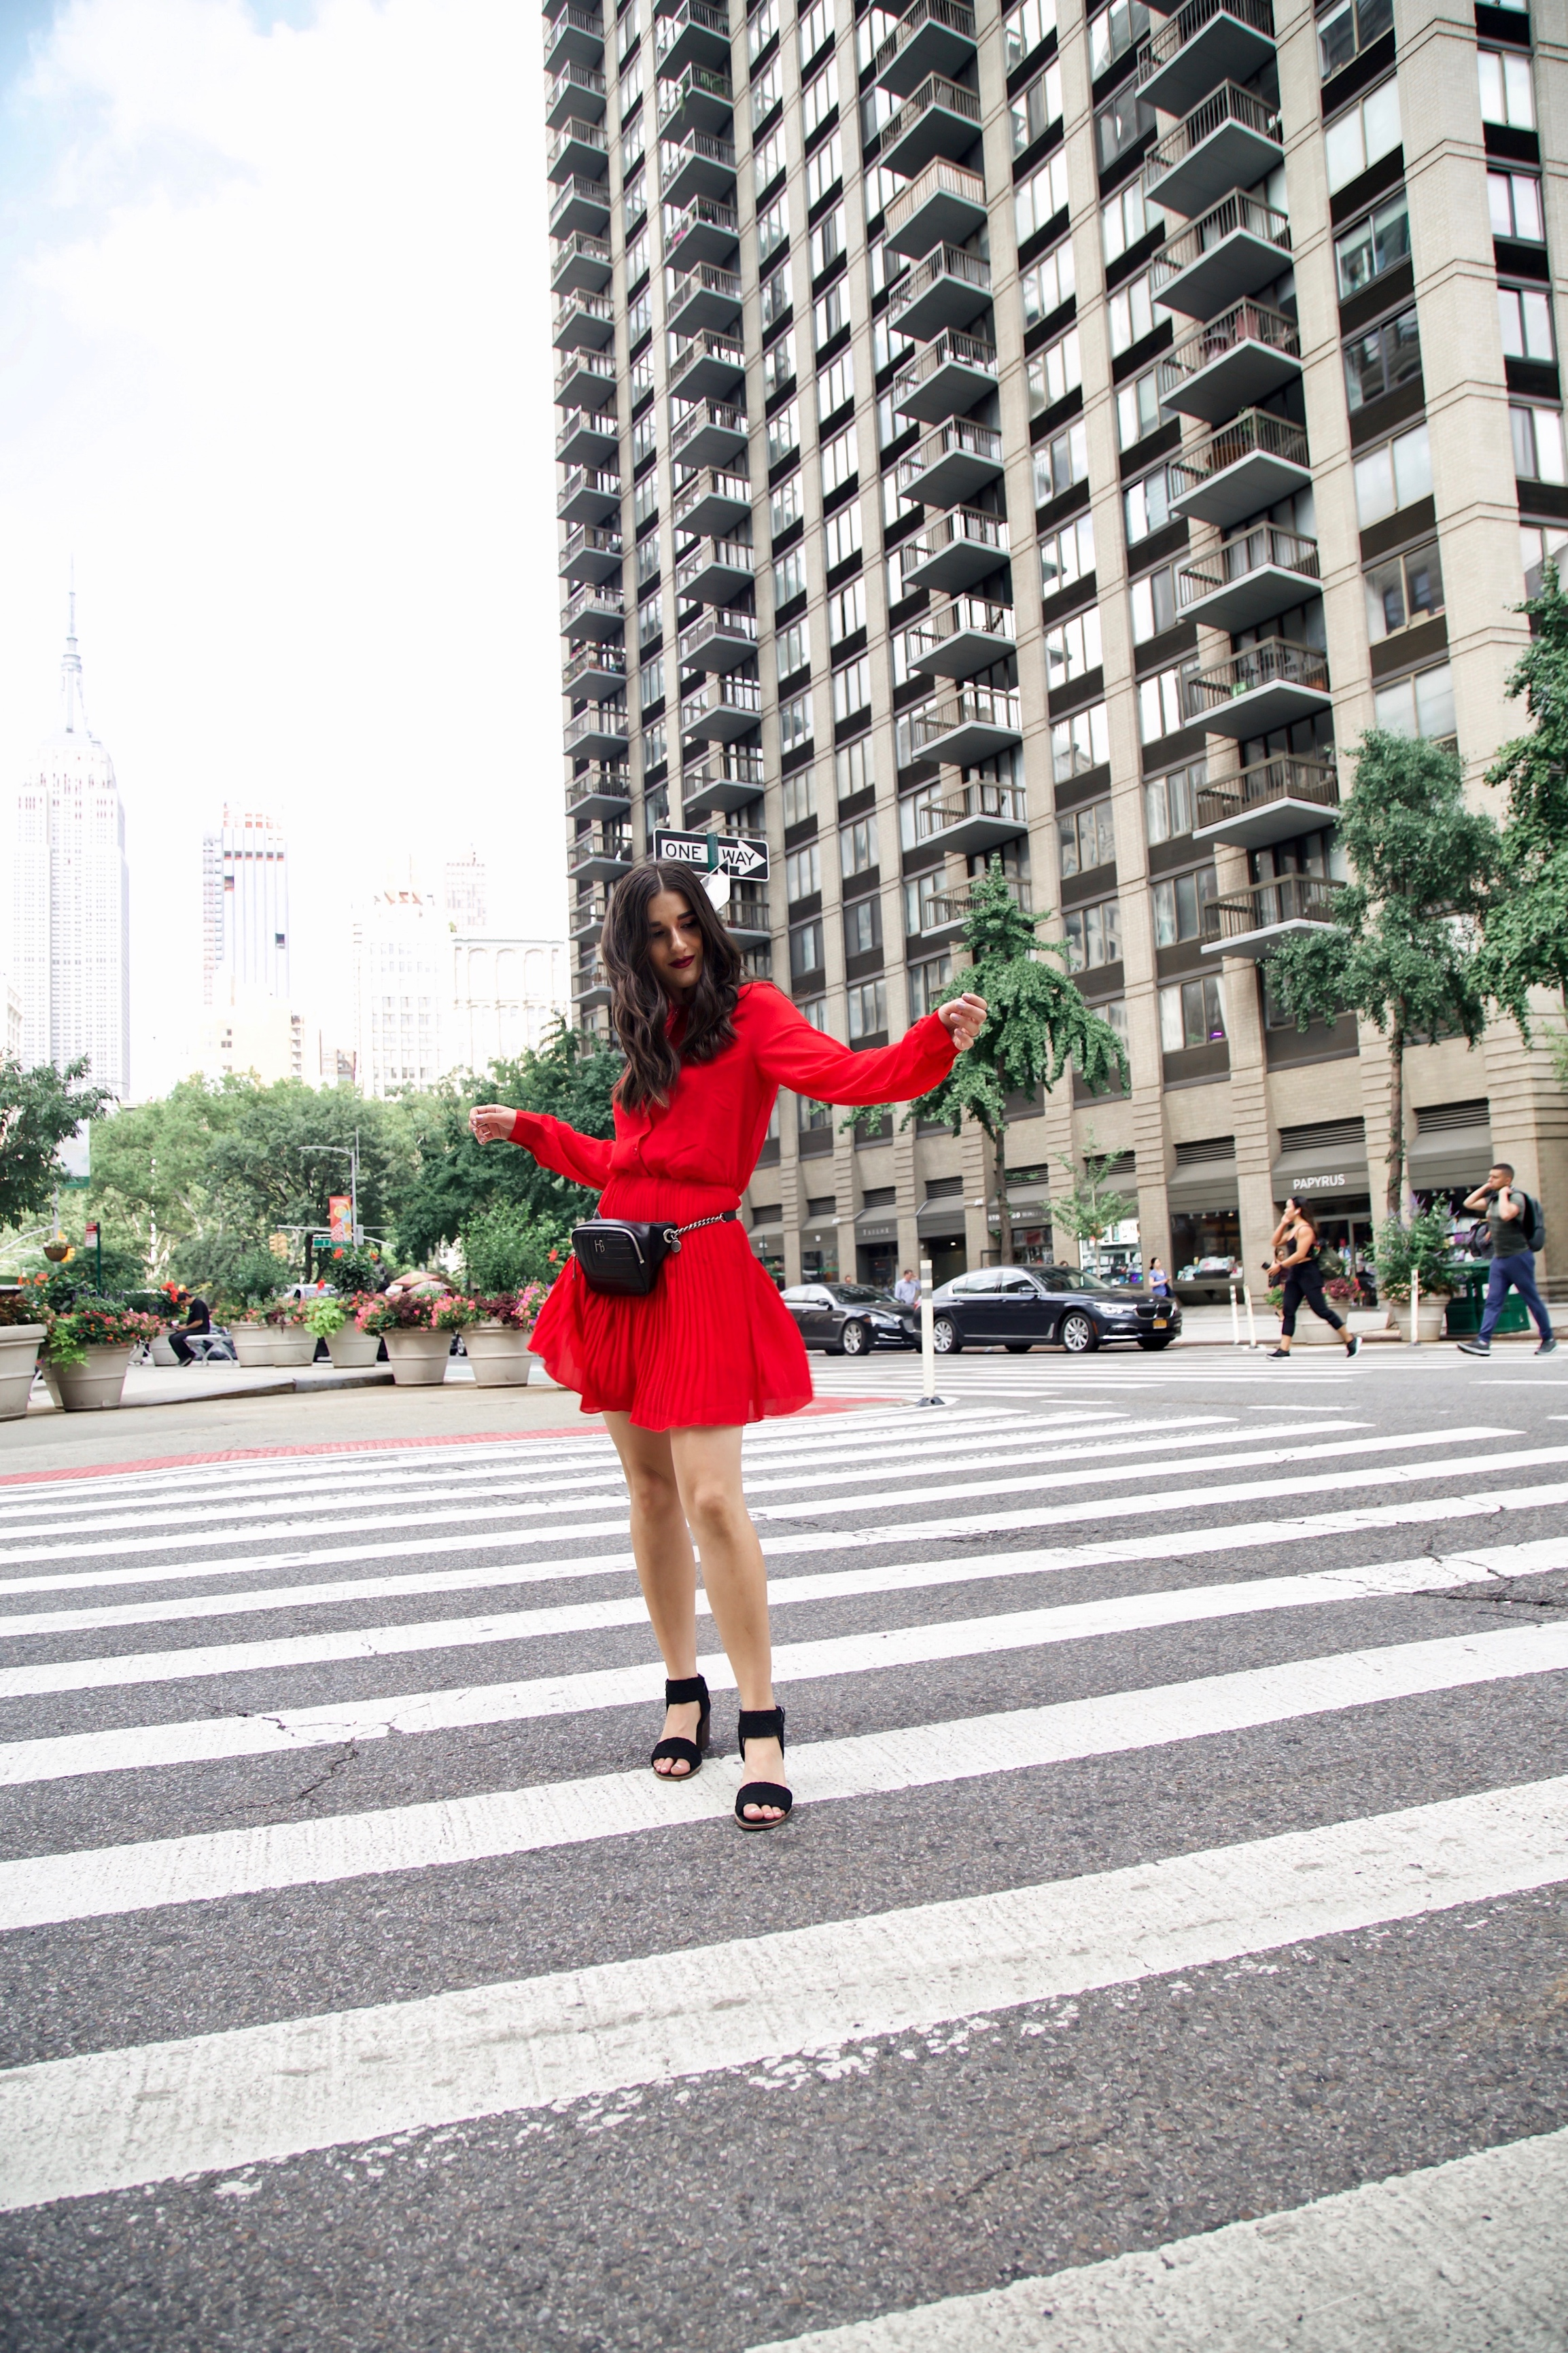 What Do Bloggers Do With All The Free Products They Receive Red Pleated Dress Black Belt Bag Esther Santer Fashion Blog NYC Street Style Blogger Outfit OOTD Trendy ASOS Vince Camuto Braided Sandals Shoes Hair Women Girl Summer Fanny Pack Fall Shopping.jpg